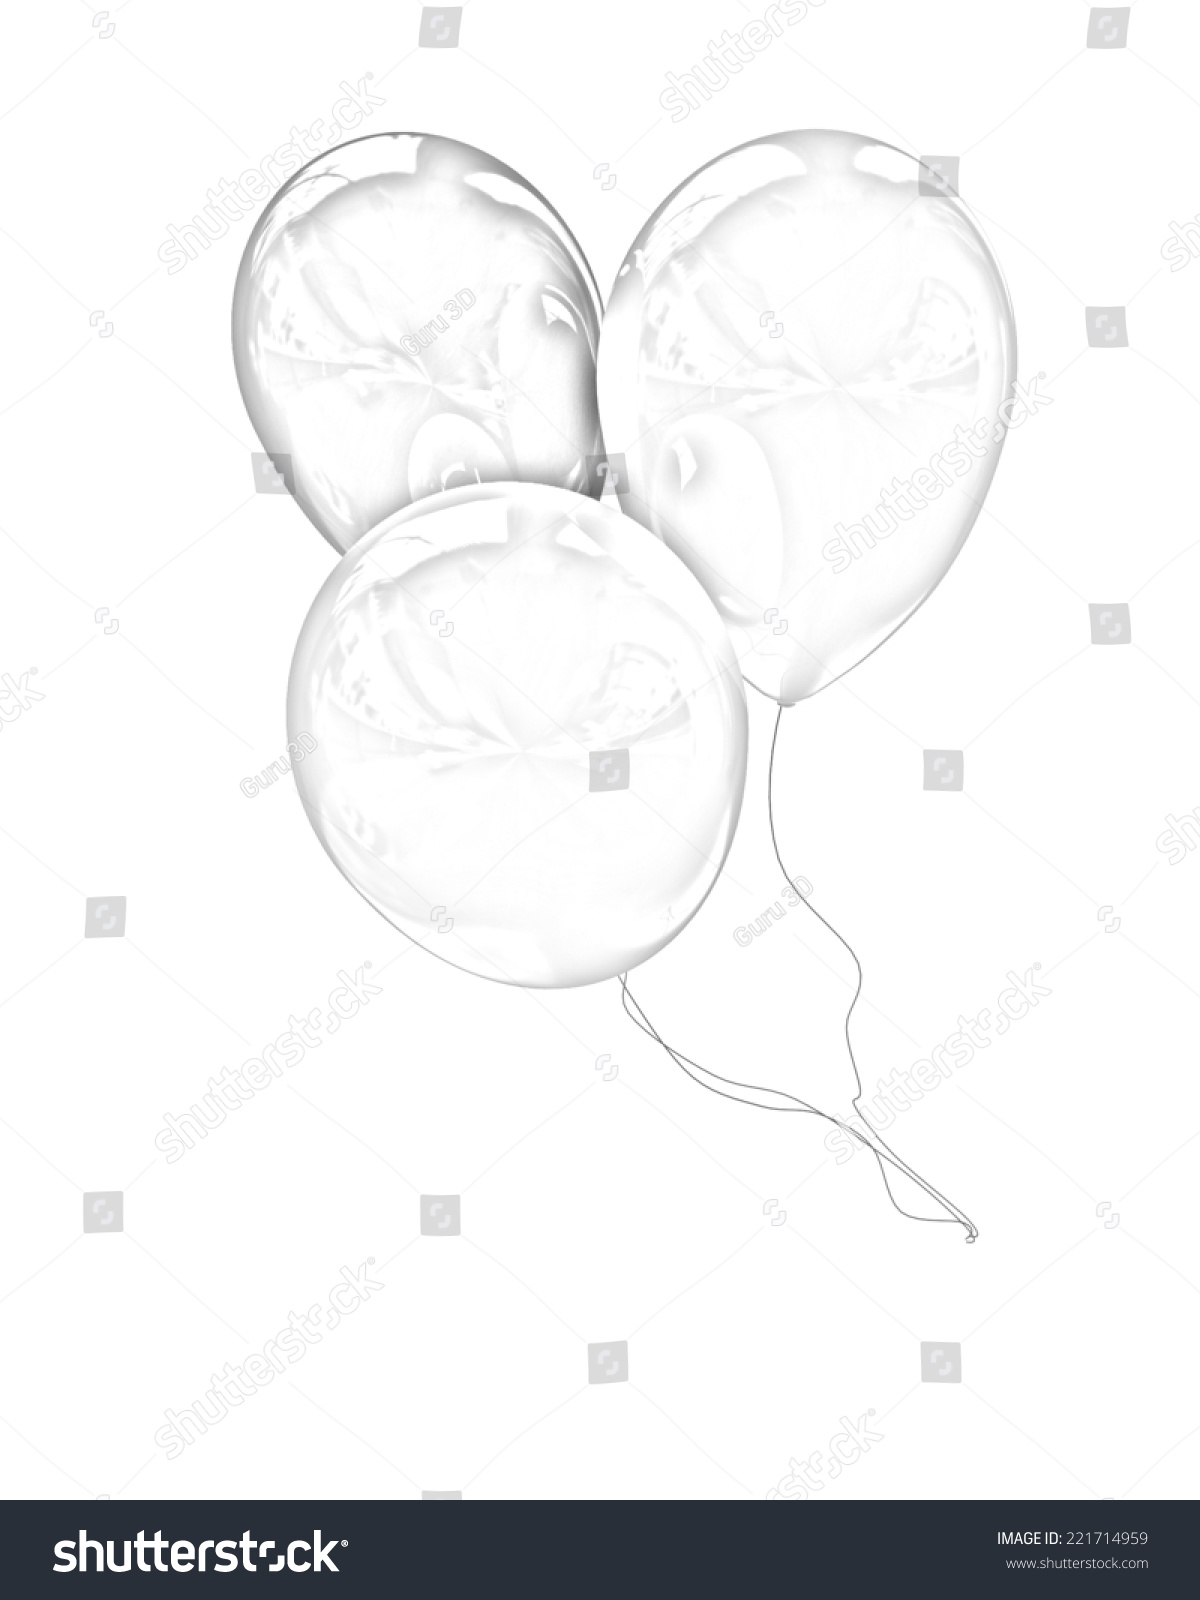 Royalty Free Stock Illustration Of 3 D Balloons On White Background